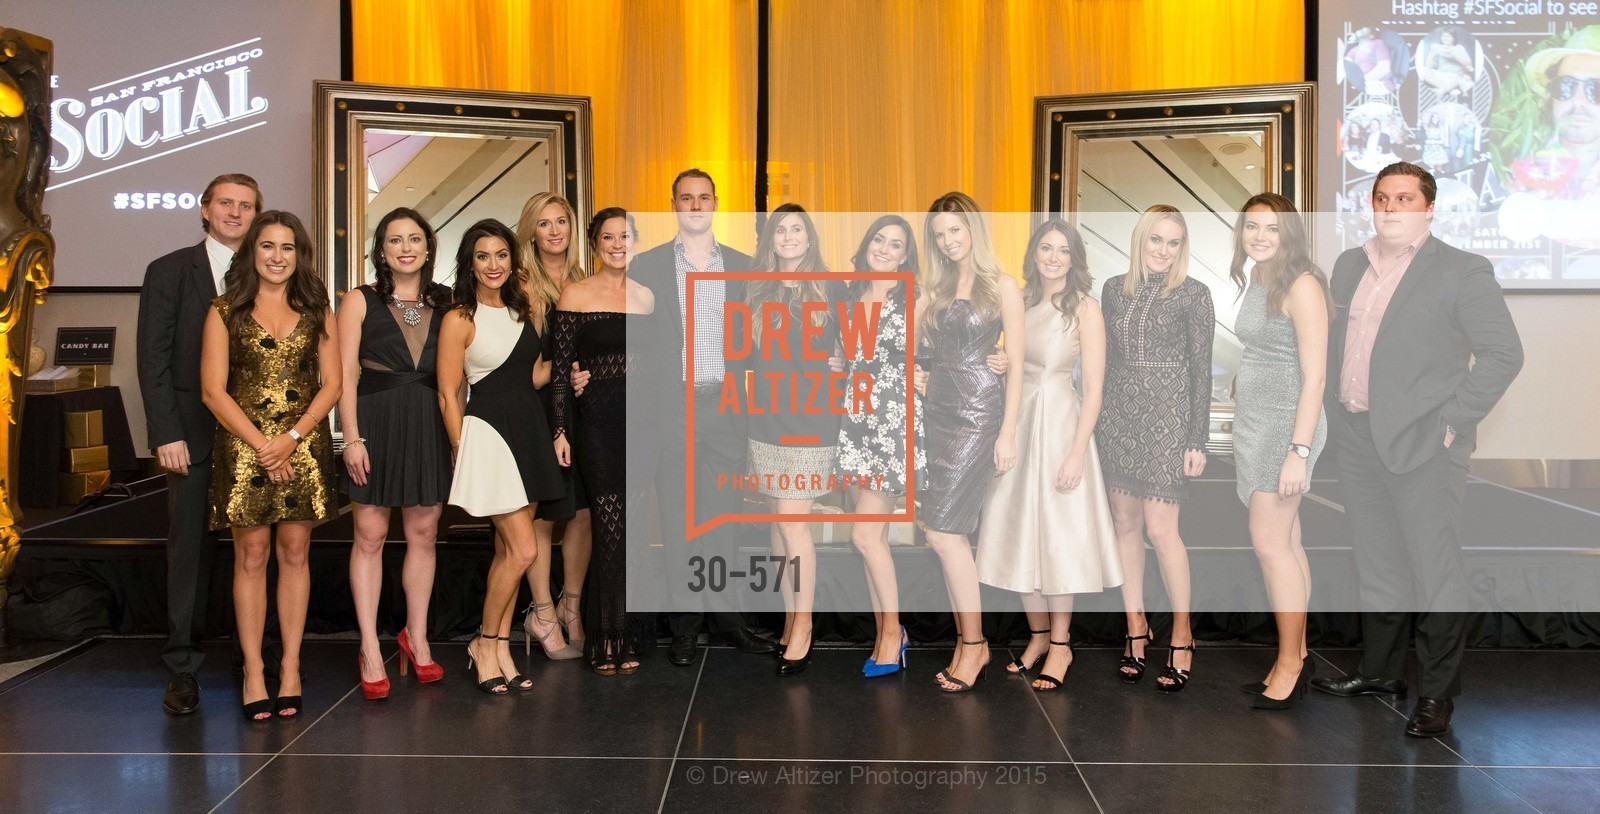 Ben Anderson, Morgan Moore, Amanda Coffee, Danielle Leeke, Alissa Yee, Hannah Schmunk, Anderson Pugash, Kelly Boynton, Kaitlyn Landers, Madison Ginnett, Meredith May, Allie Zimnoch, Jack Herr, The 10th Annual San Francisco Social, W Hotel. 181 3rd St, November 21st, 2015,Drew Altizer, Drew Altizer Photography, full-service agency, private events, San Francisco photographer, photographer california